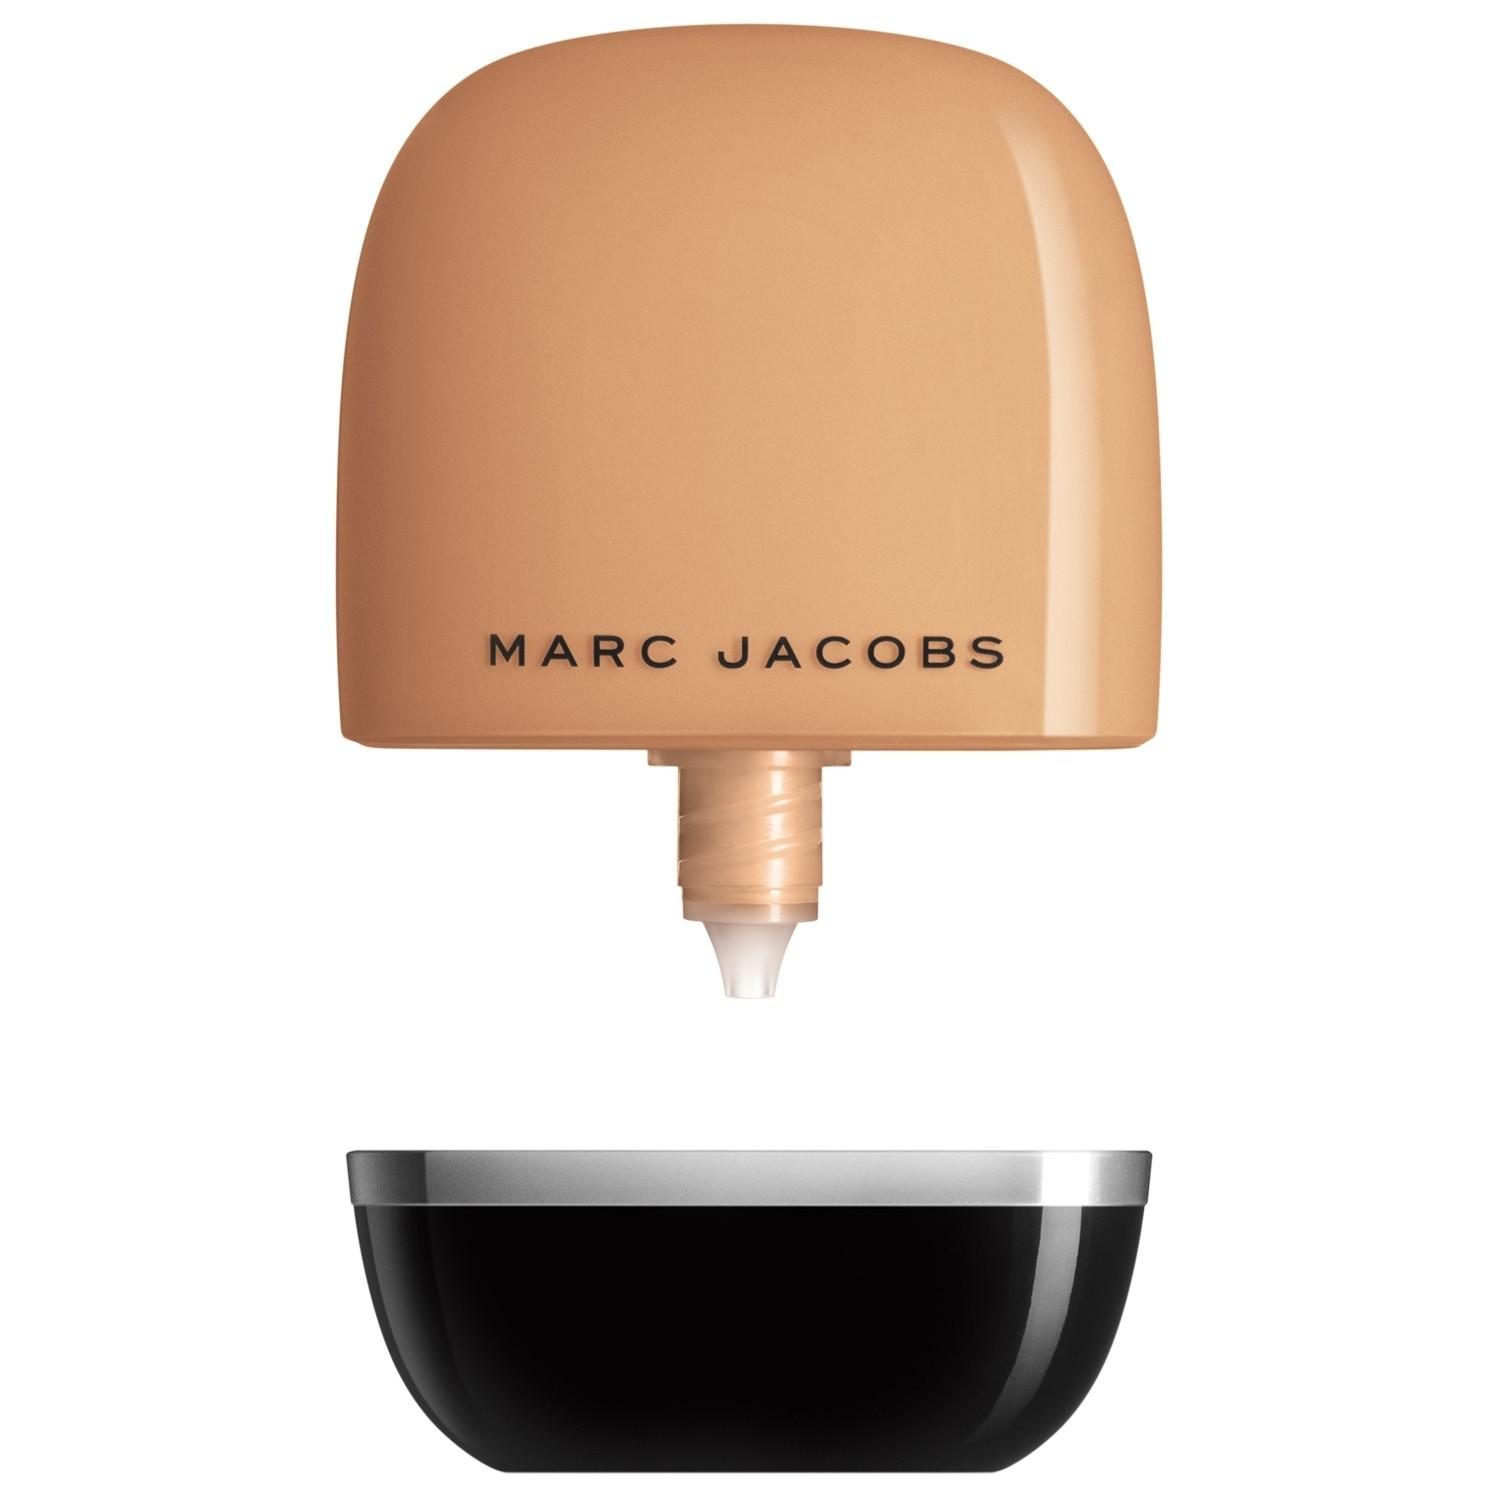 Marc Jacobs Shameless Youthful-Look 24H Foundation Tan Y470